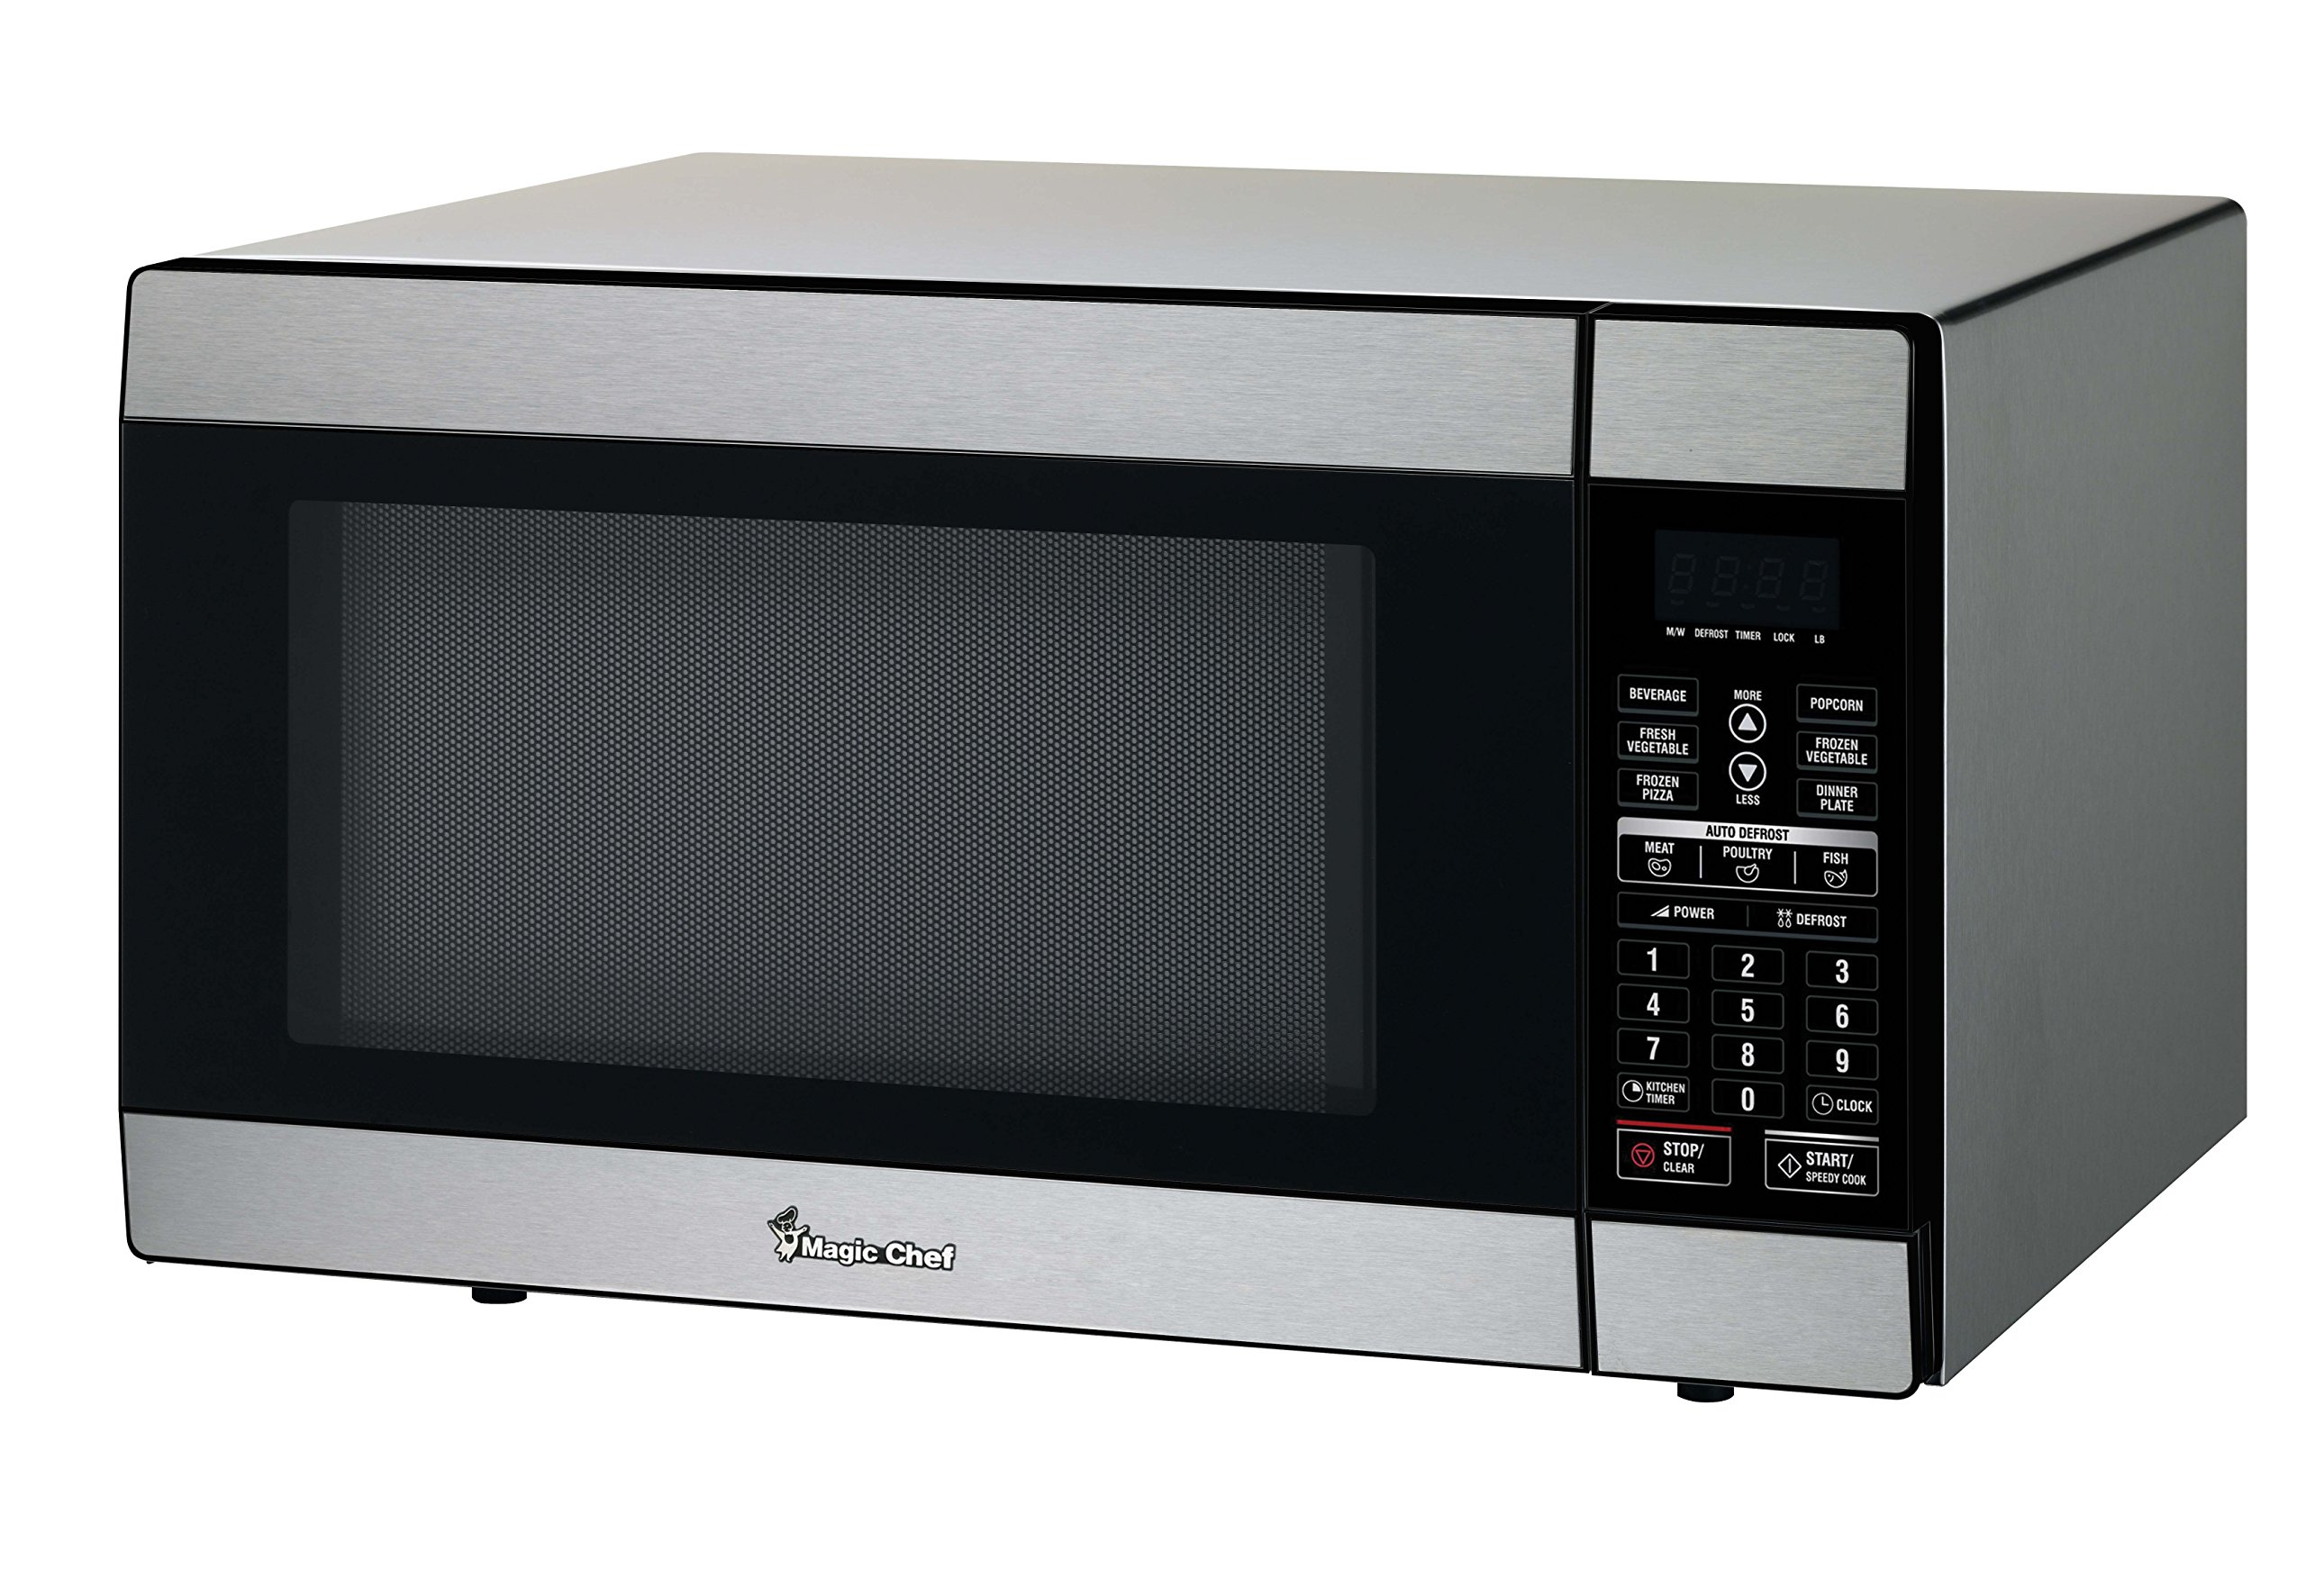 Magic Chef Mcd1811St 1.8 Cubic-Feet 1100-Watt Stainless Microwave with Digital Touch